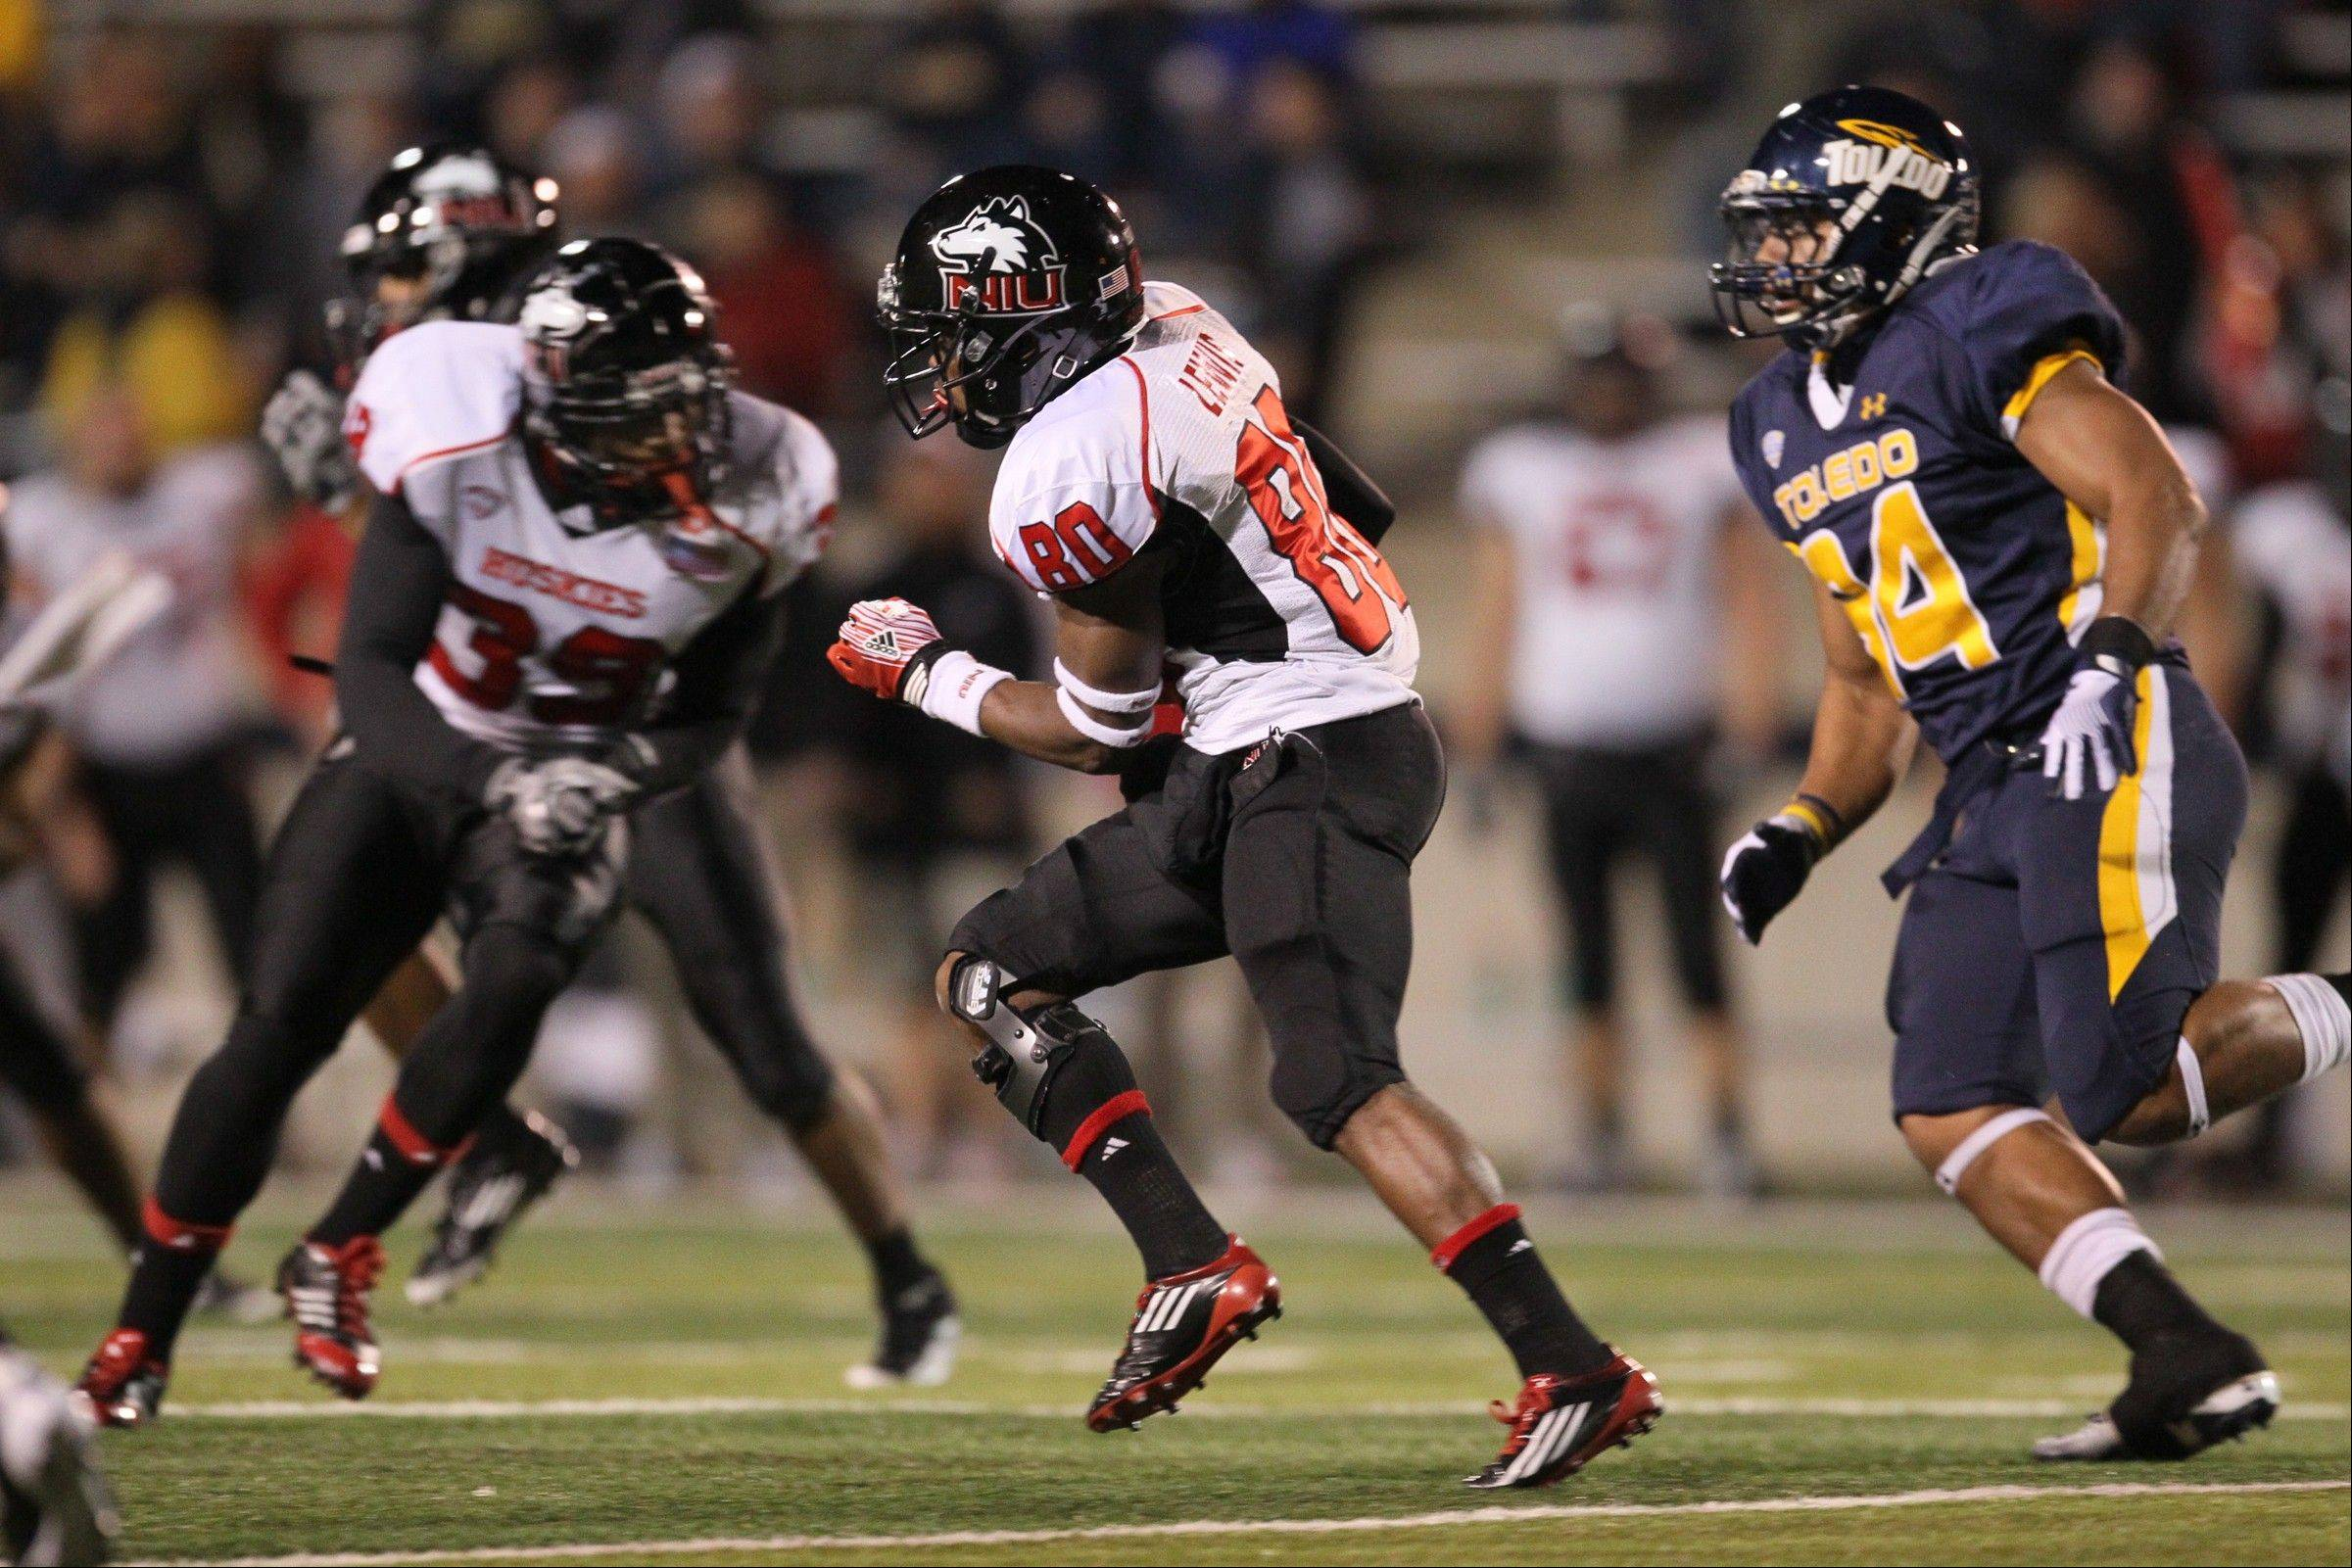 Northern Illinois' Tommylee Lewis (80) returns the opening kickoff for a 100-yard touchdown against Toledo last Tuesday. Lewis also scored on a 95-yard kick return. Next up for the Huskies, a Tuesday night game at Bowling Green.